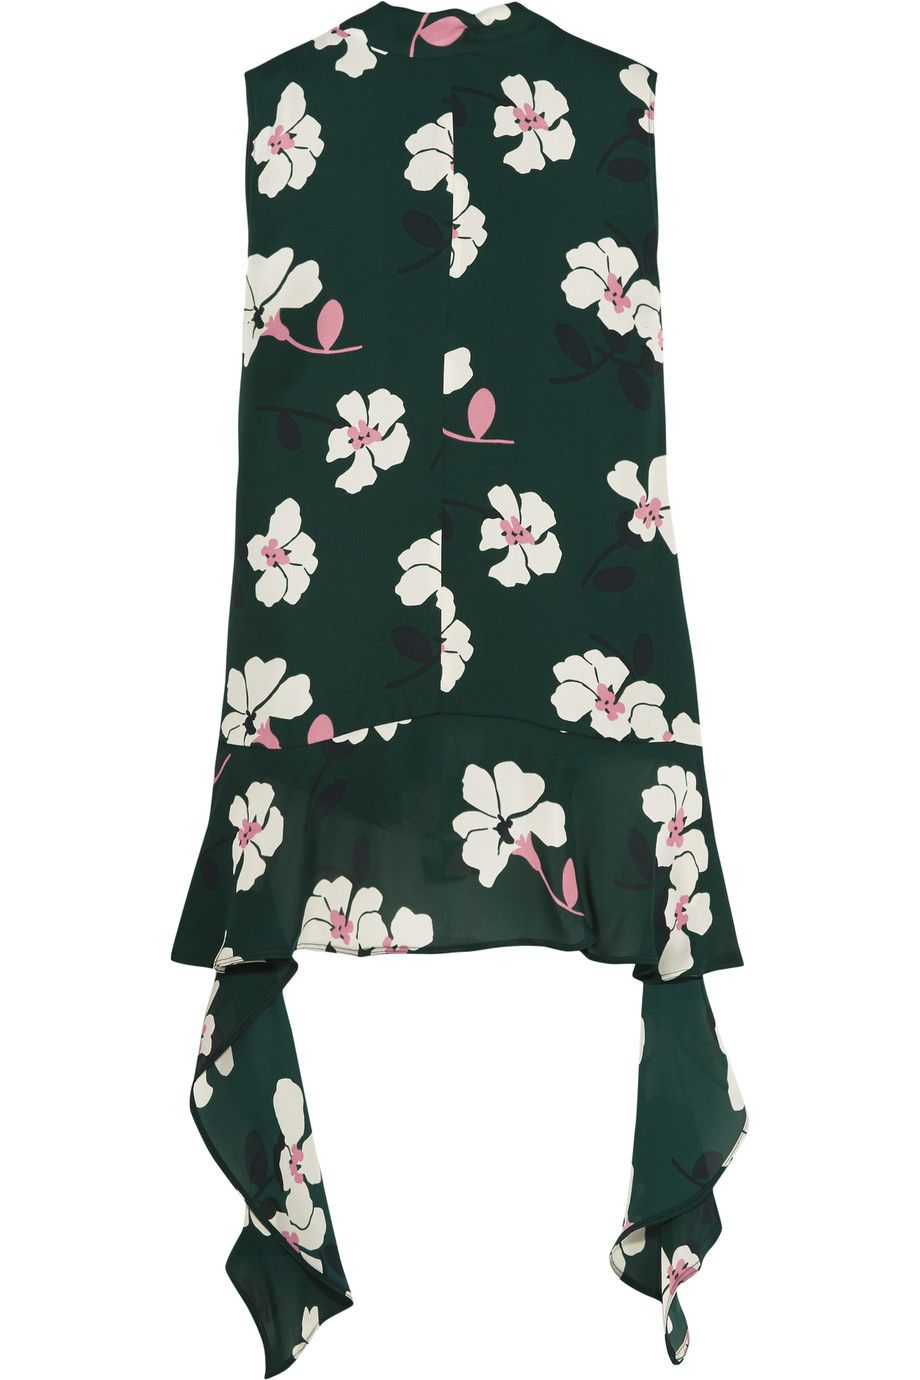 Floral-printed silk blouse Marni Sale Cheapest Price Outlet Cheap Price Sale Best Sale Discount Shopping Online Discount Sale lxdO3zYny8